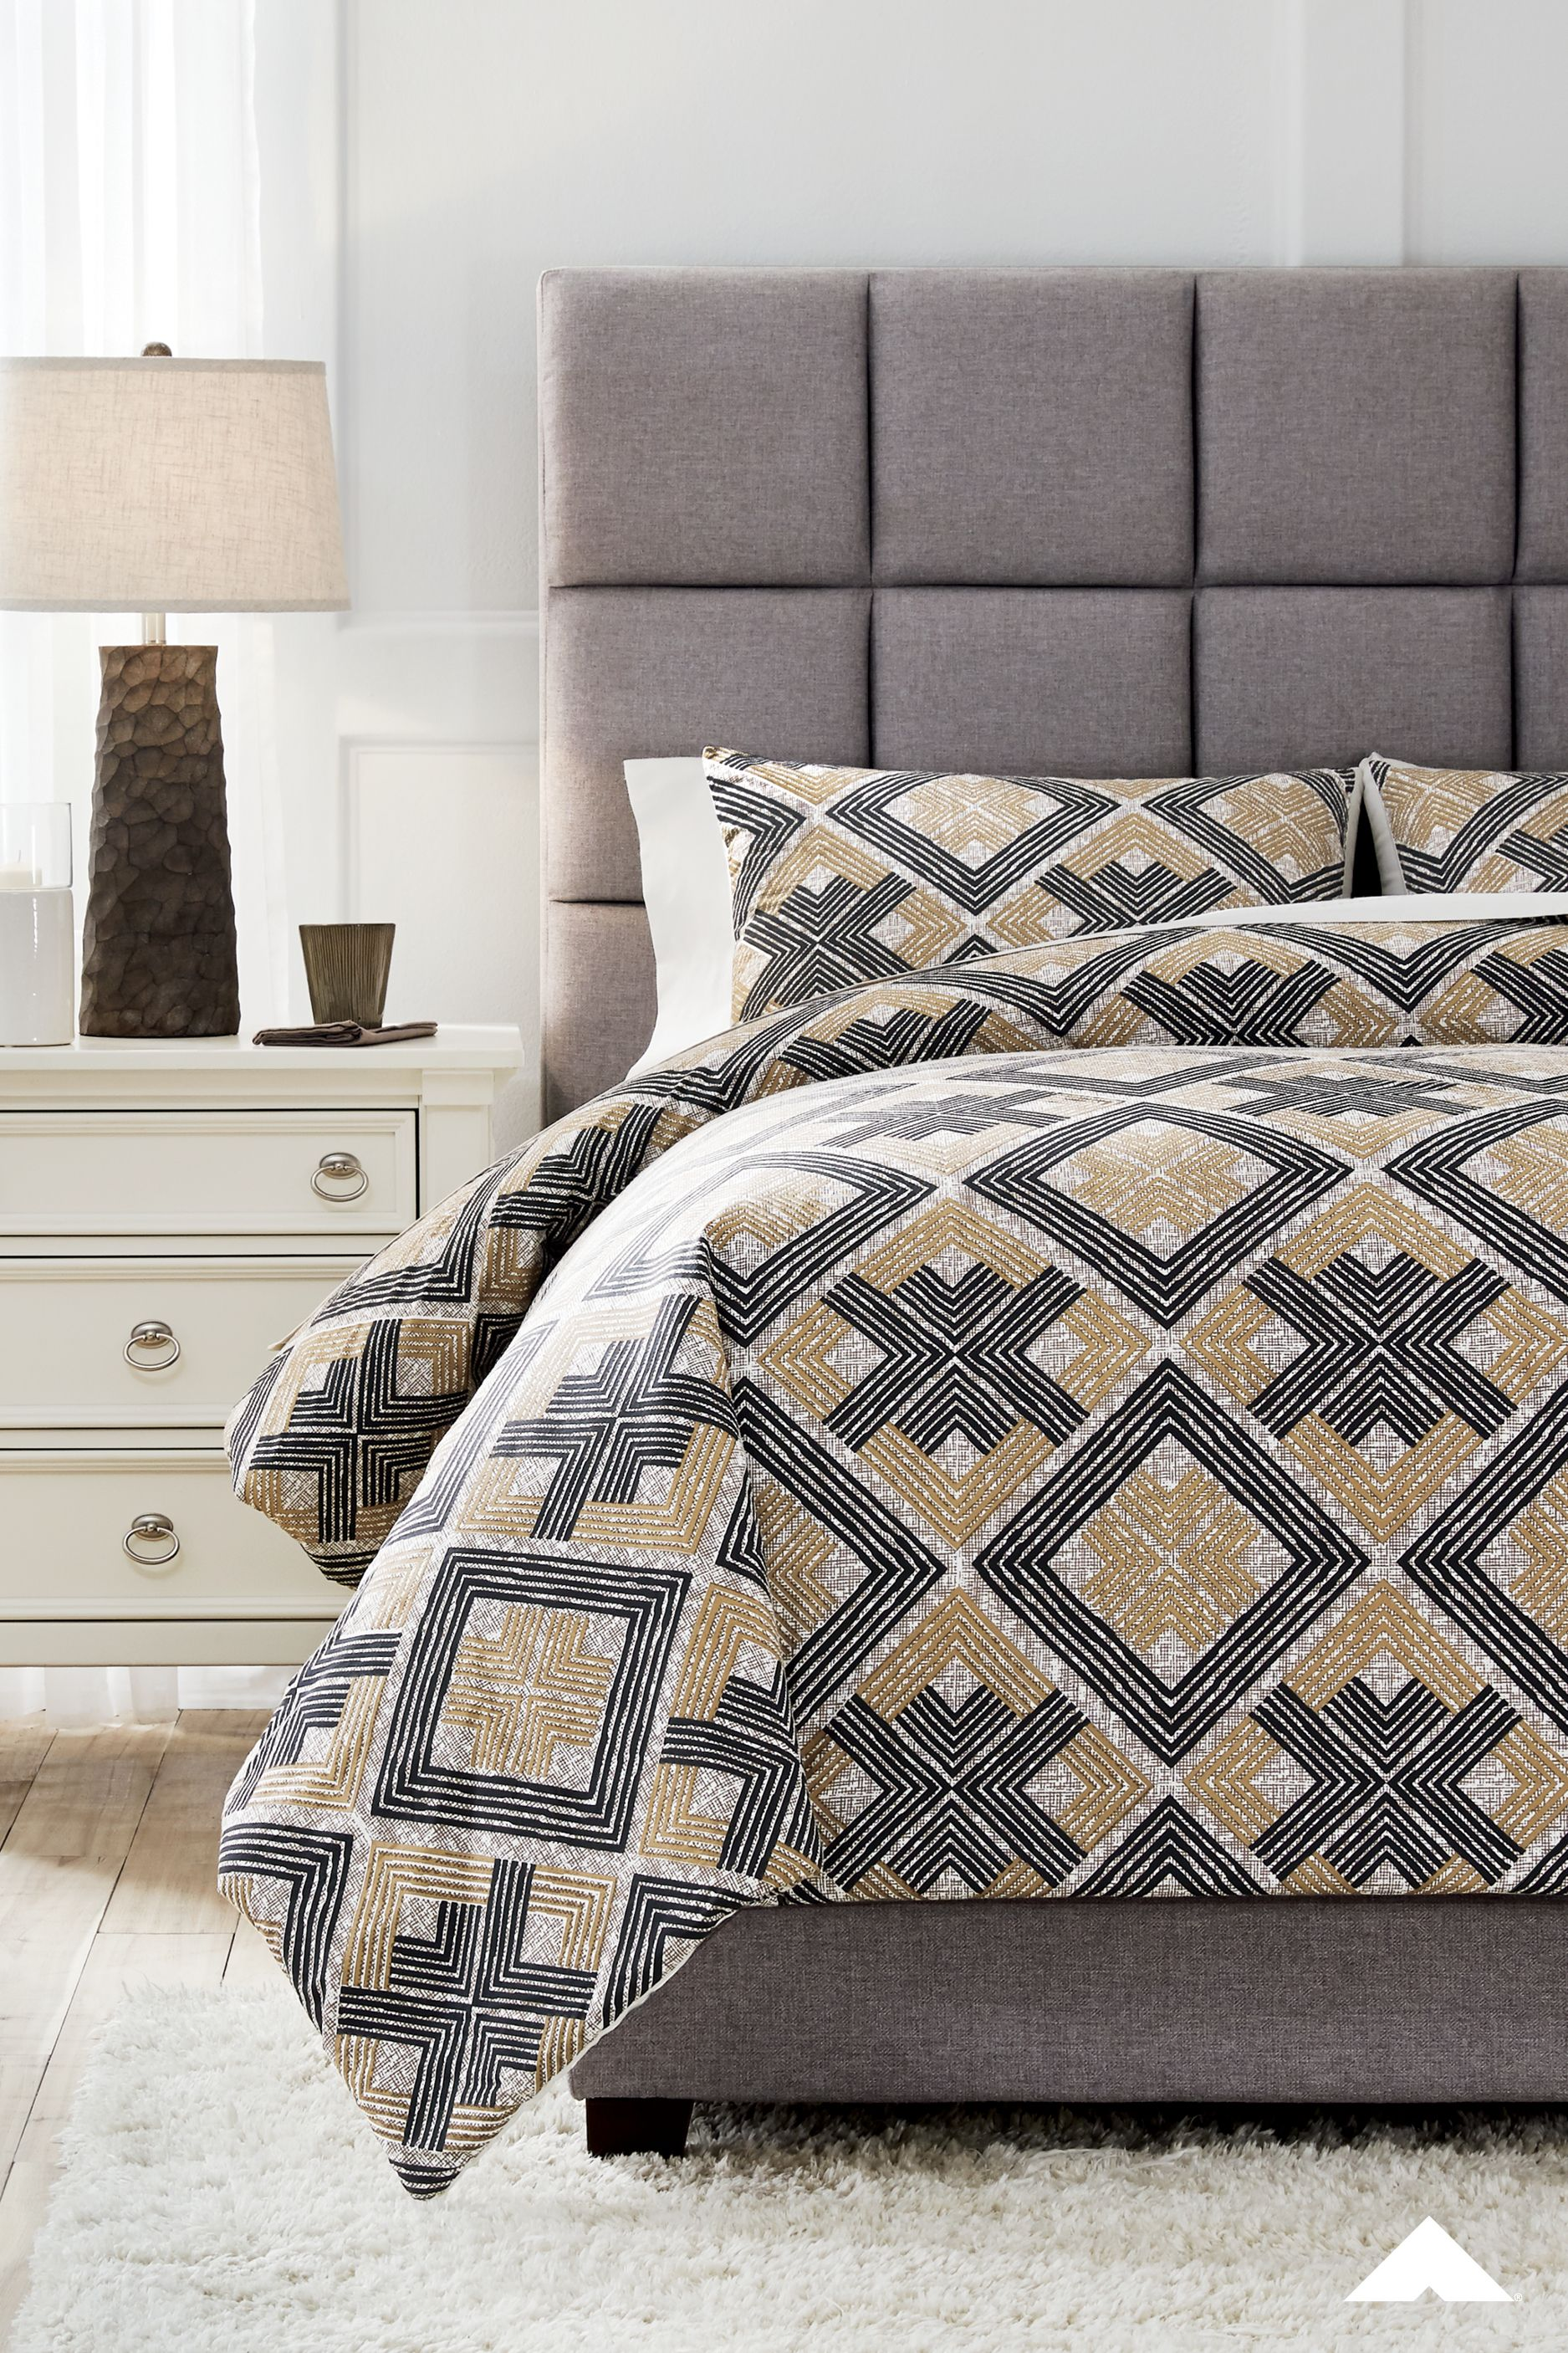 Scylla Black Brown Queen Comforter Set From Ashley Furniture